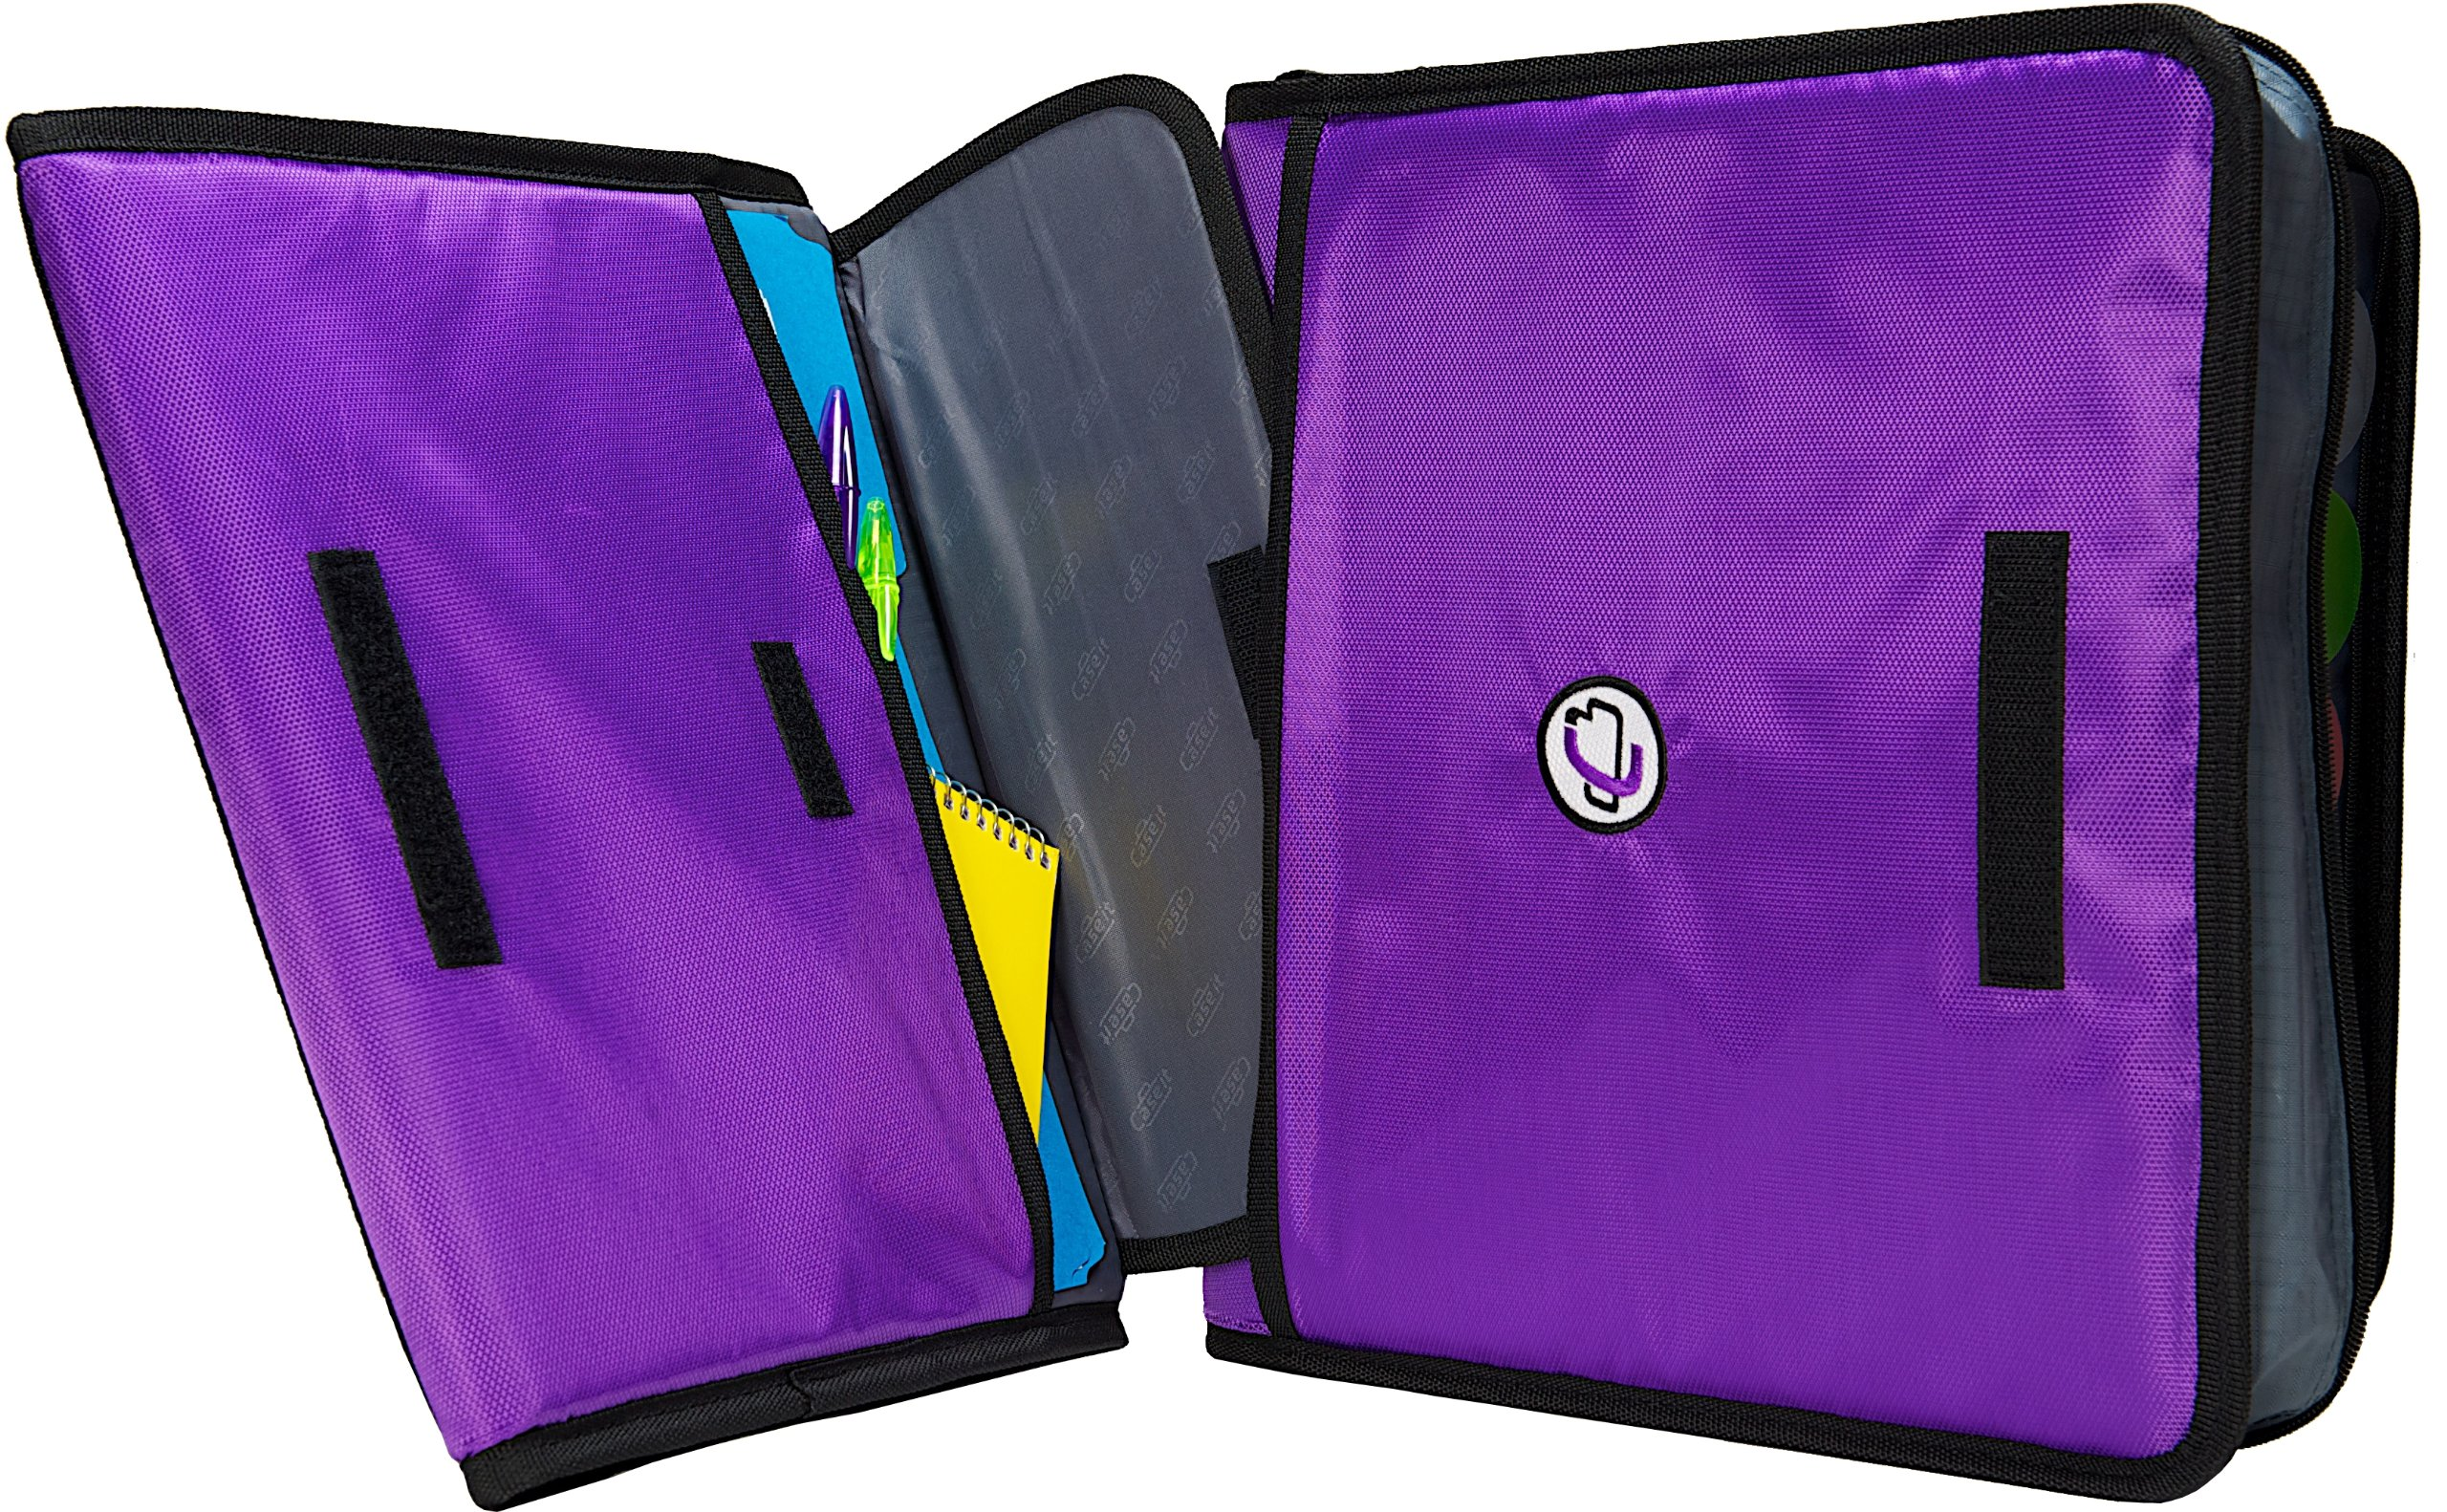 Case-it Sidekick 2-Inch O-Ring Zipper Binder with Removable Tab File, Purple, D-901-PUR by Case-It (Image #6)